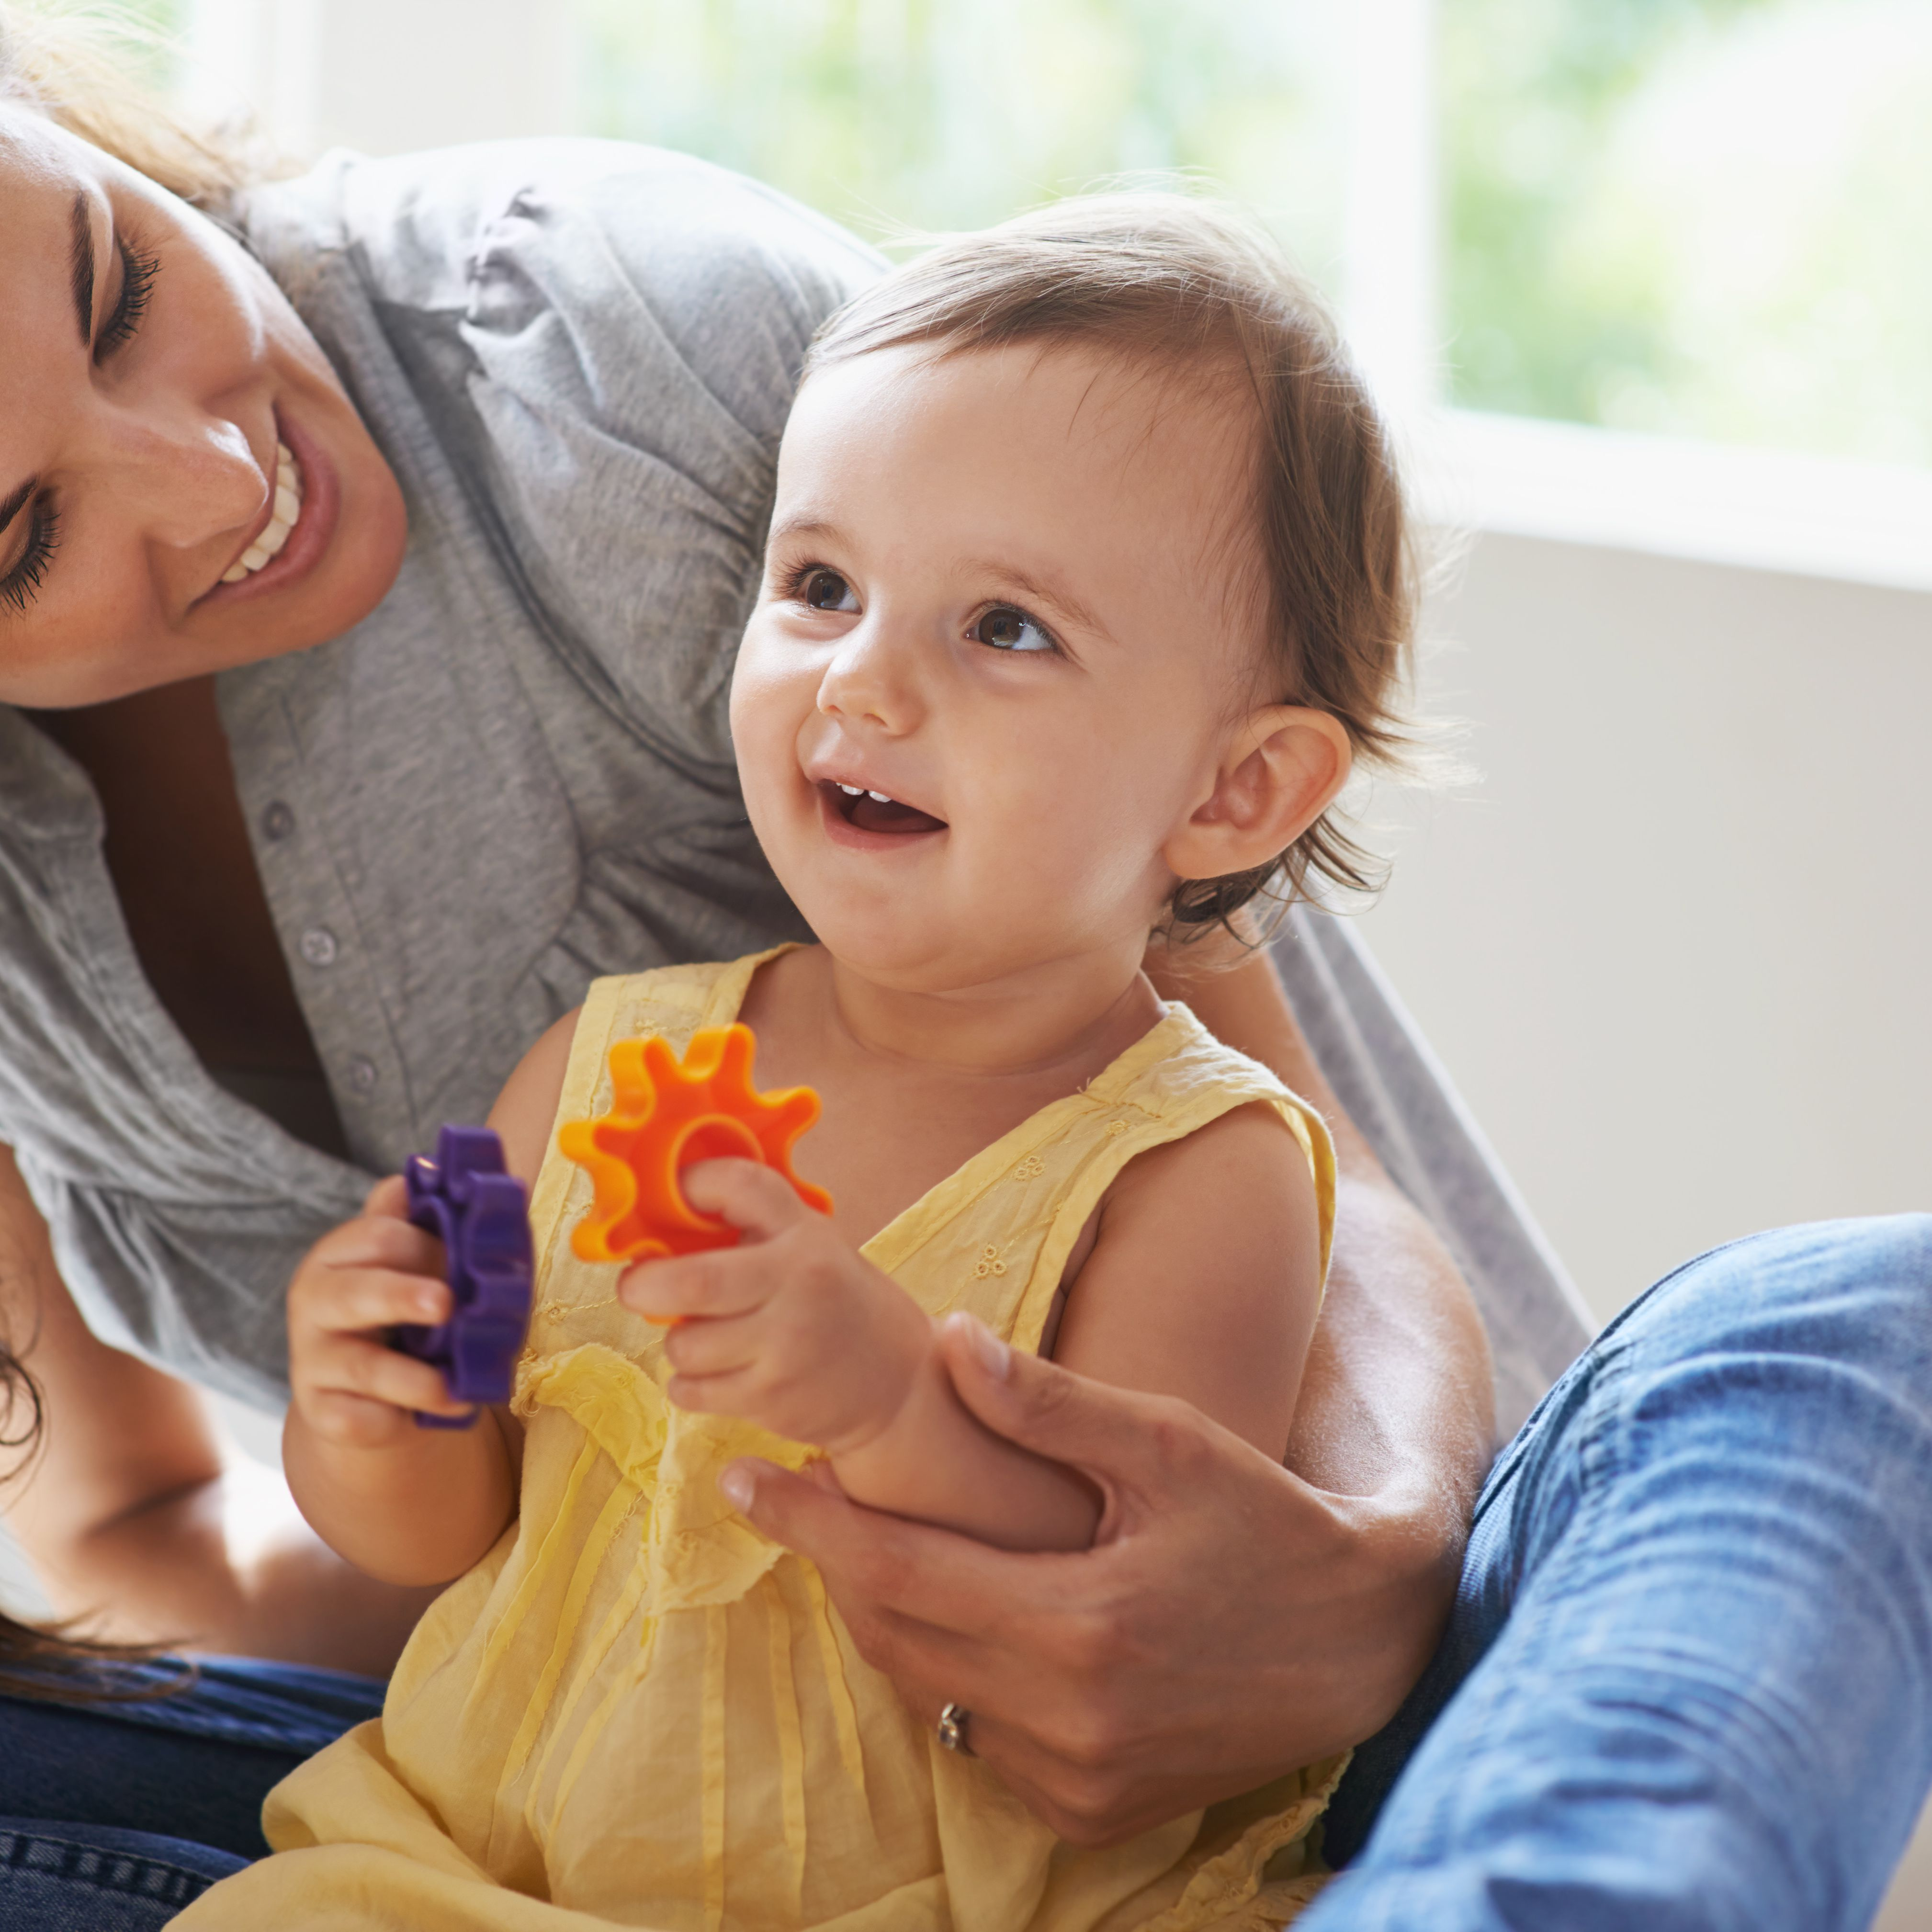 How to Avoid Nanny Scams